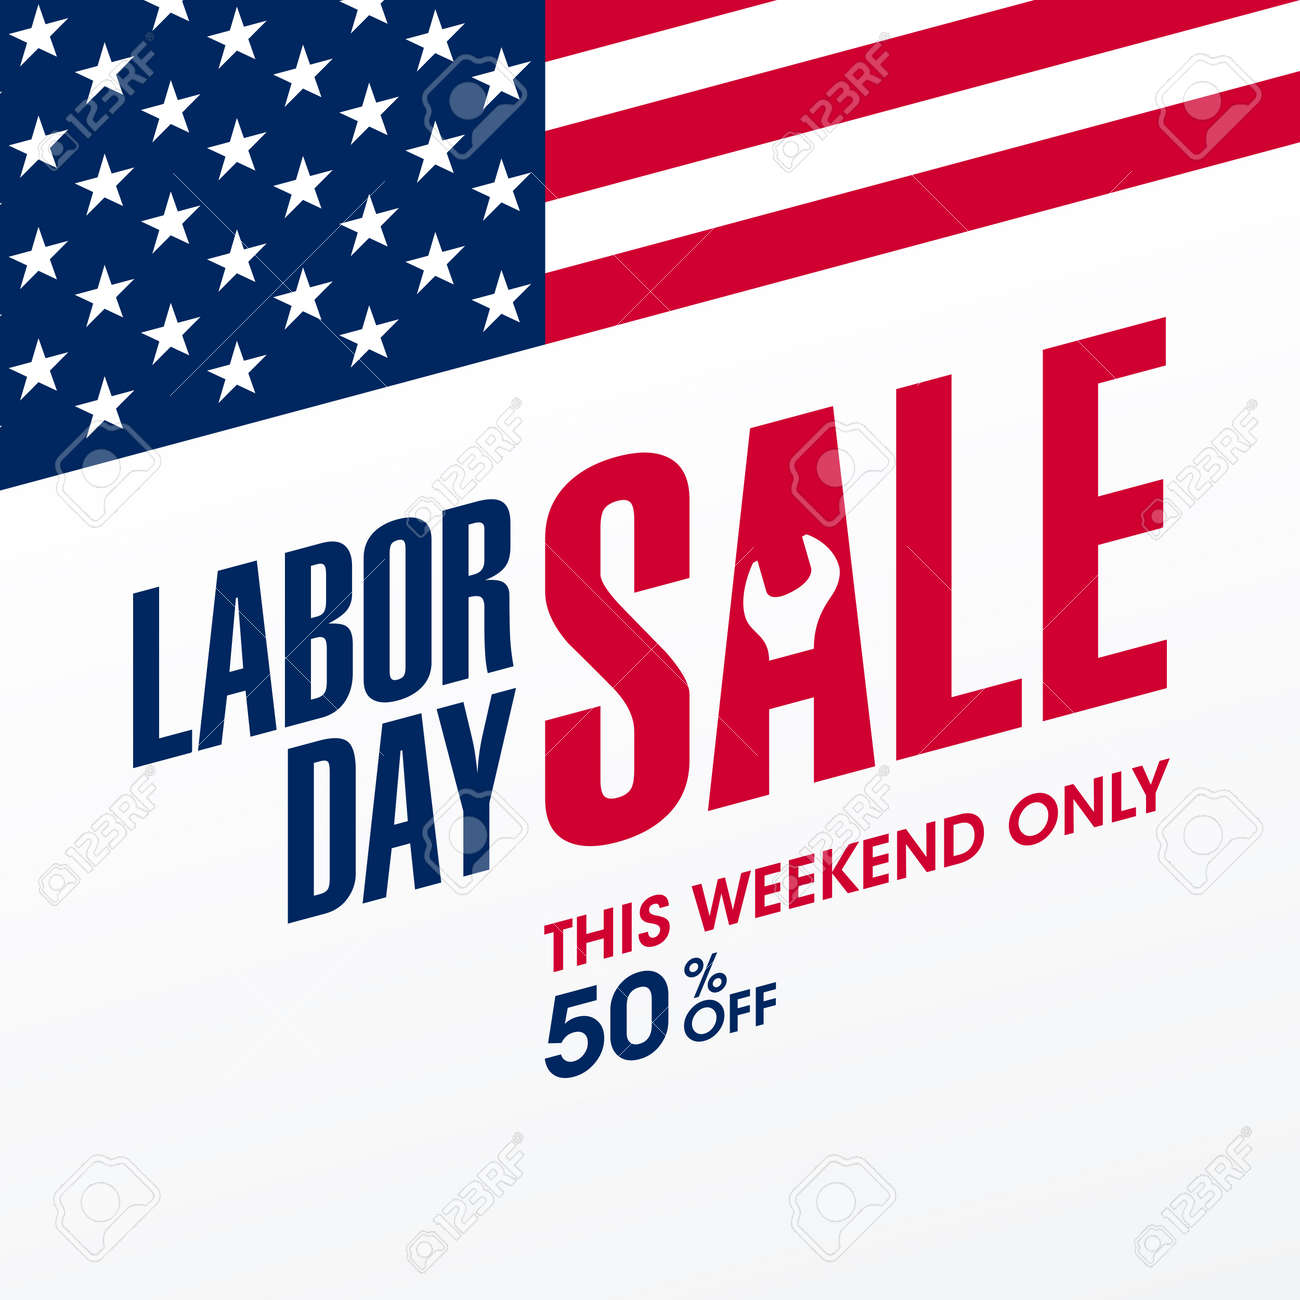 Labor Day Sale This Weekend Only Special Offer Banner Design